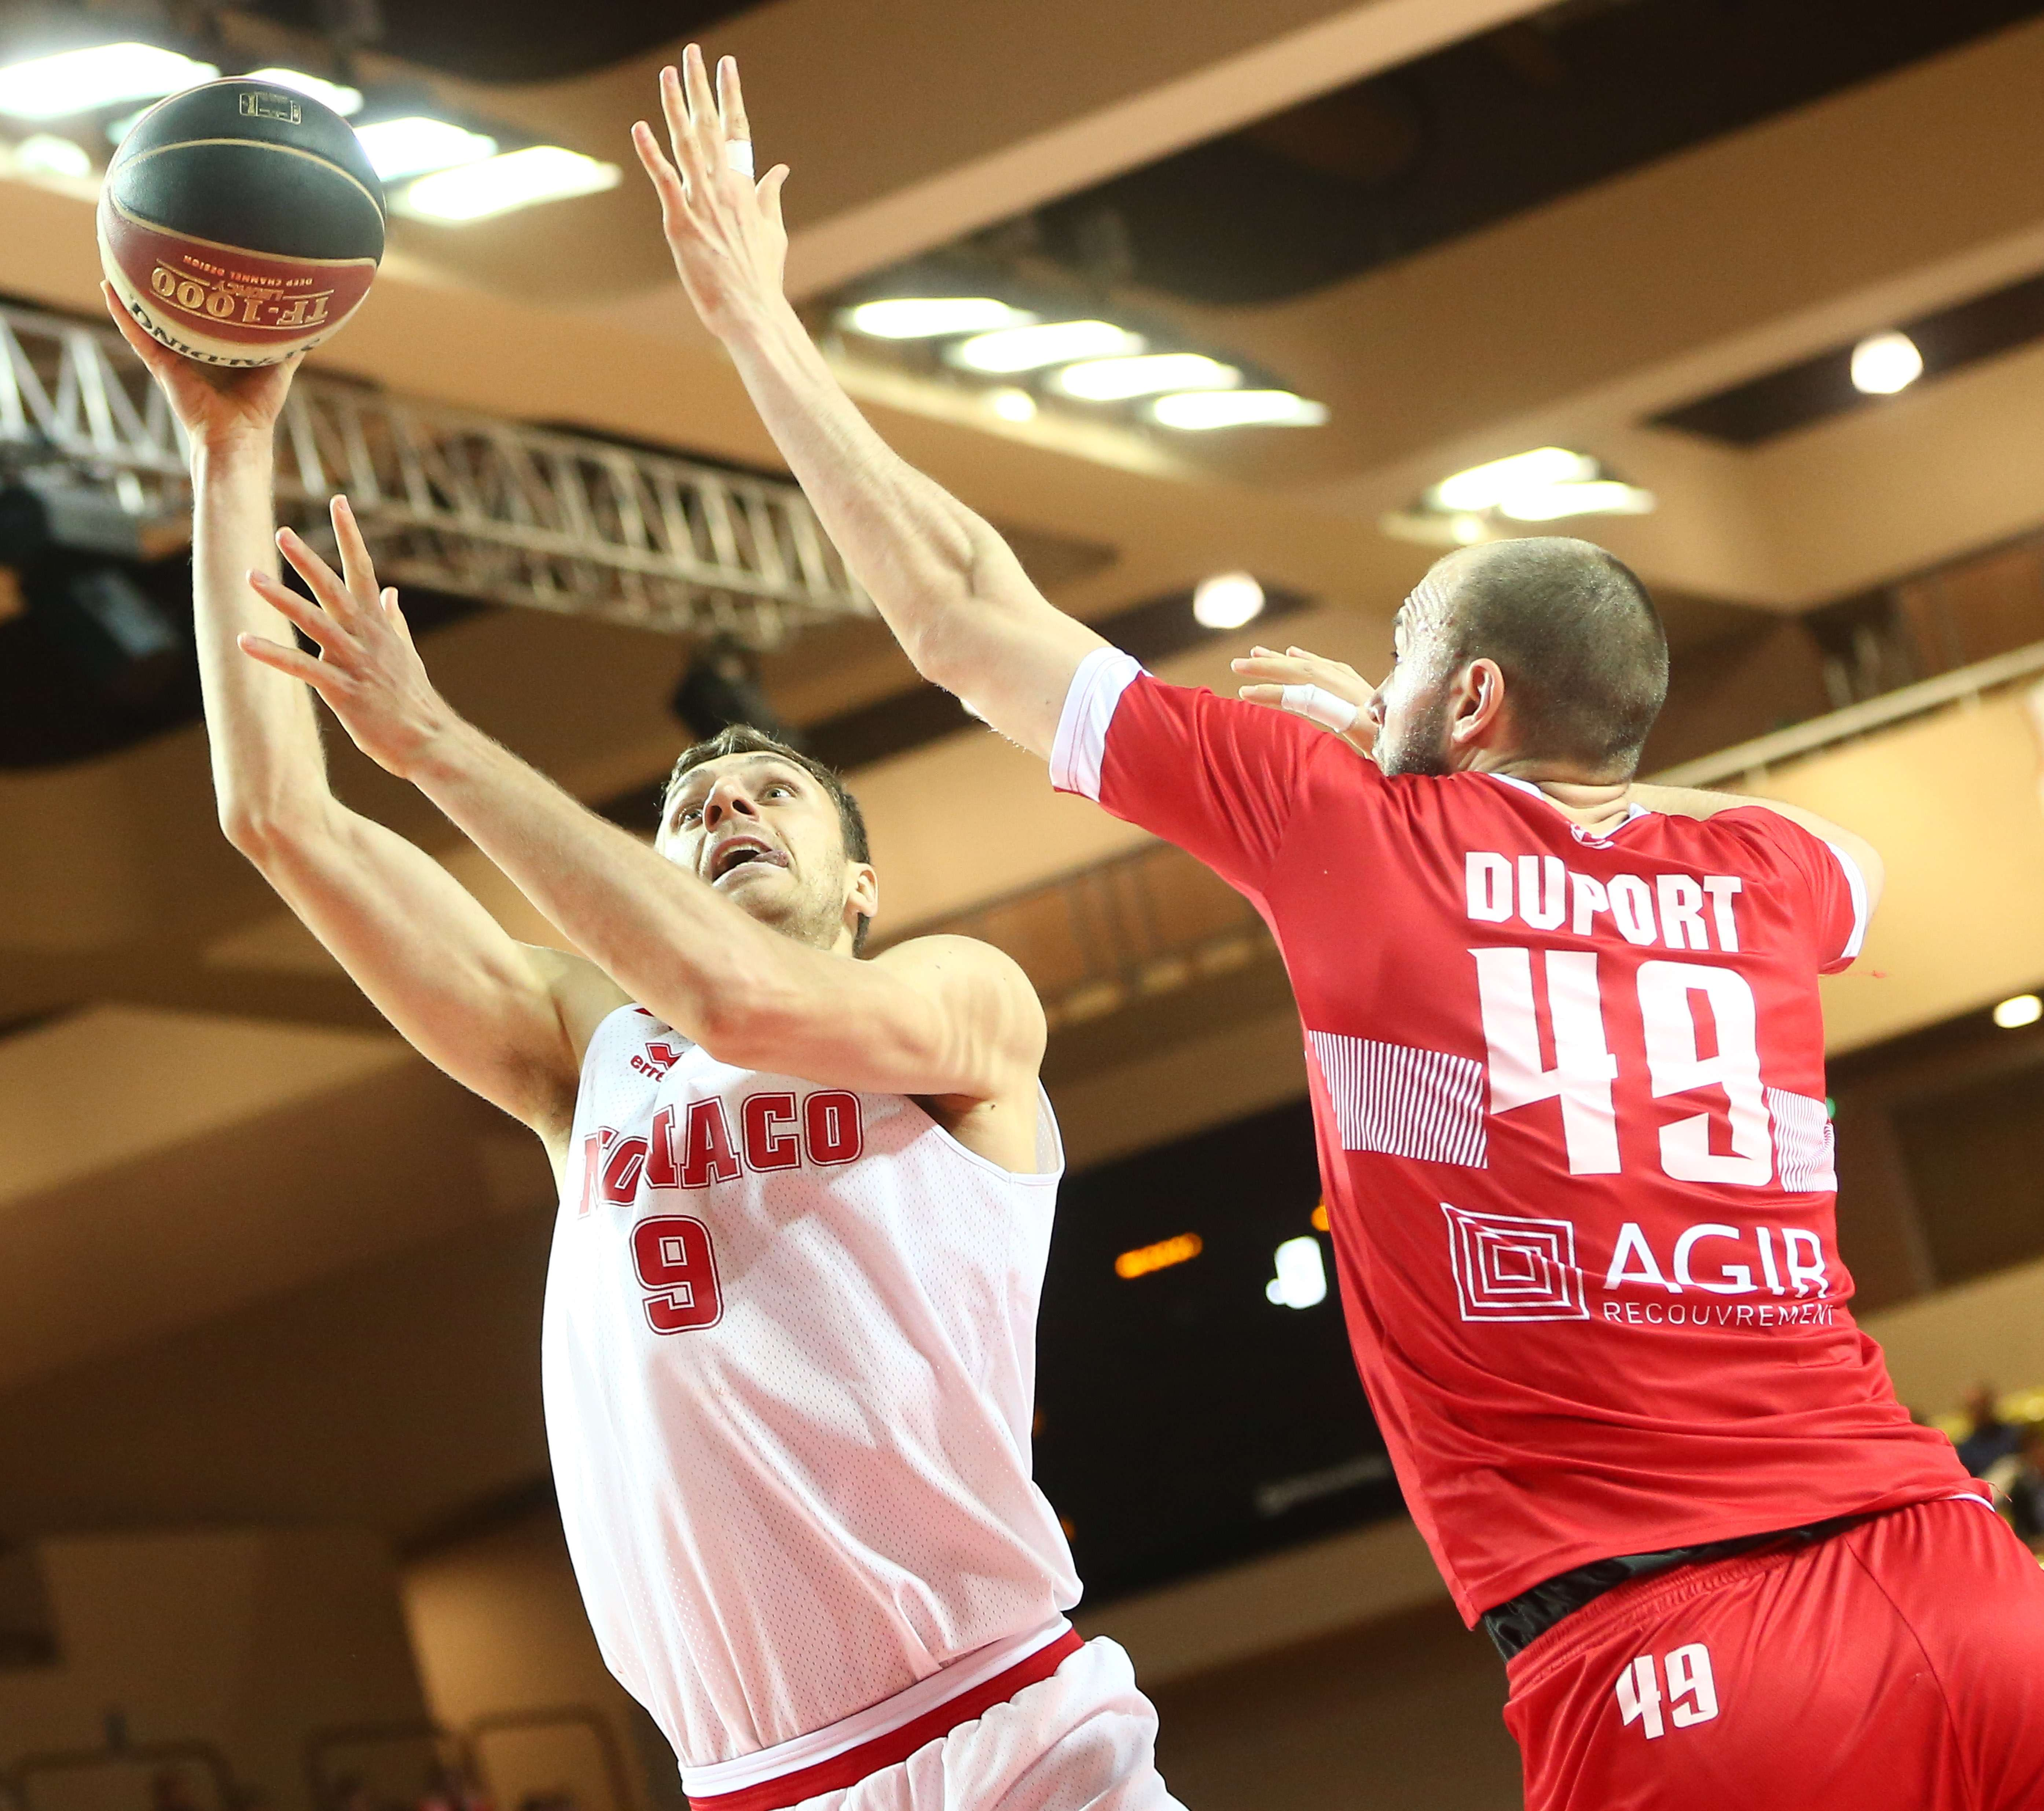 © Serge Haouzi-AS Monaco Basket